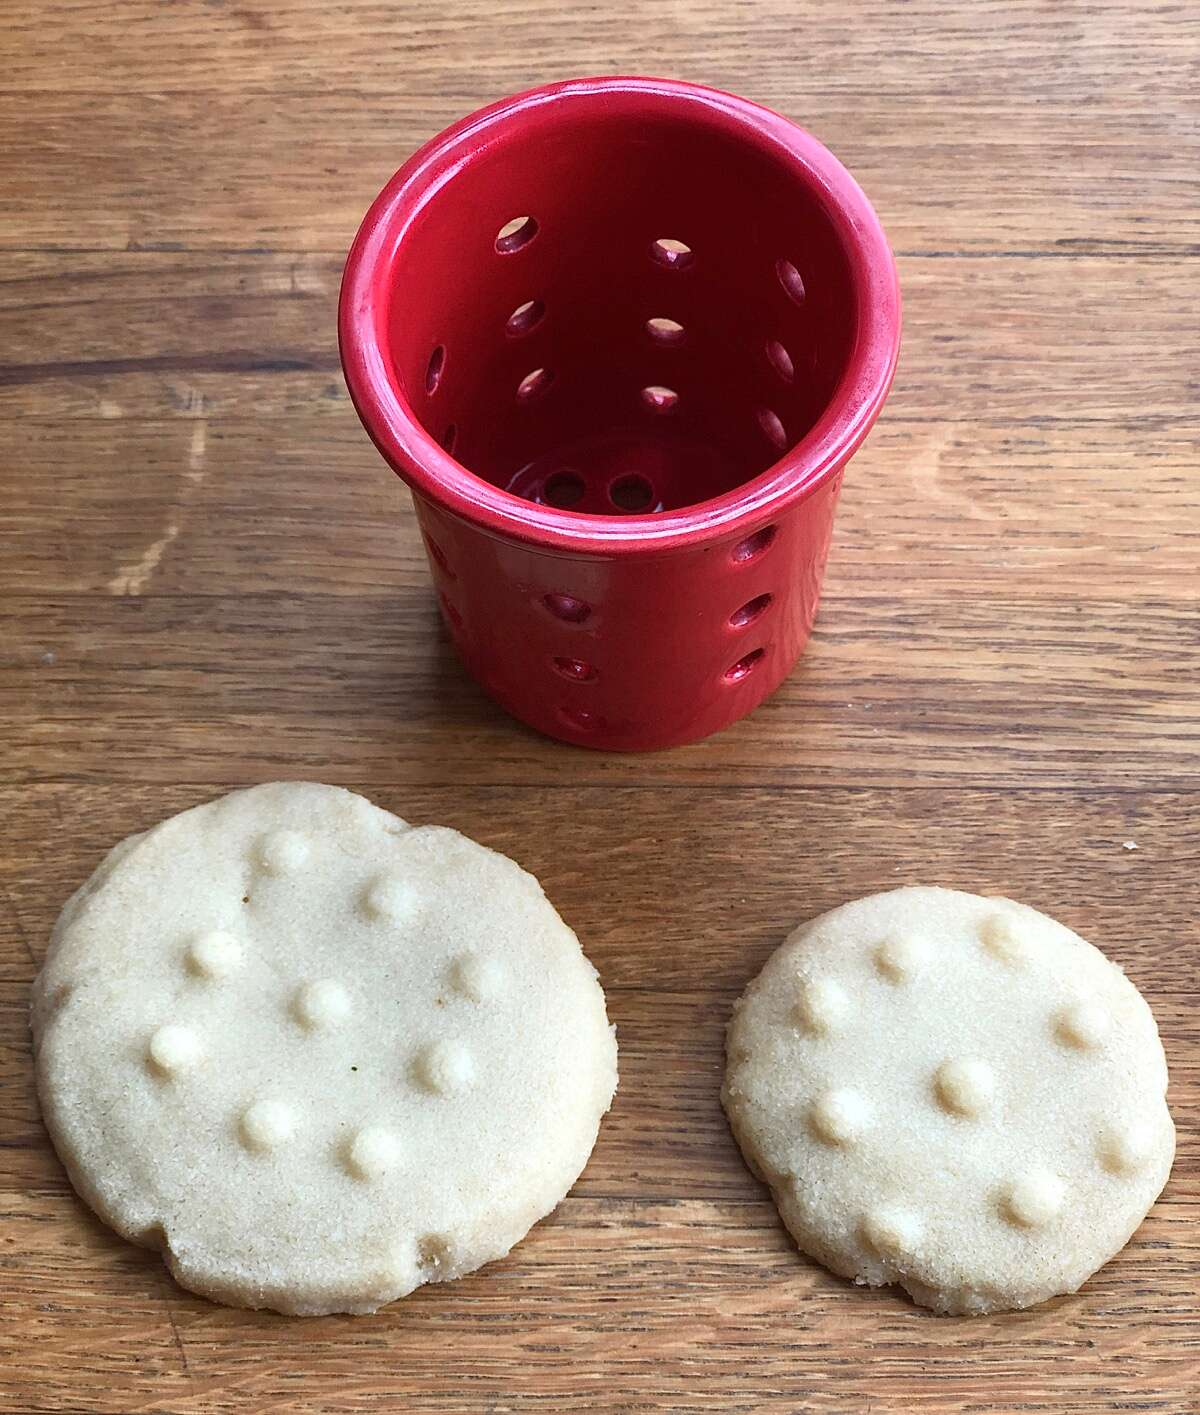 Two chocolate cookies on a table, one large, one small, showing how the imprint made with a tea strainer covers the small cookie, but only partially covers the large one.